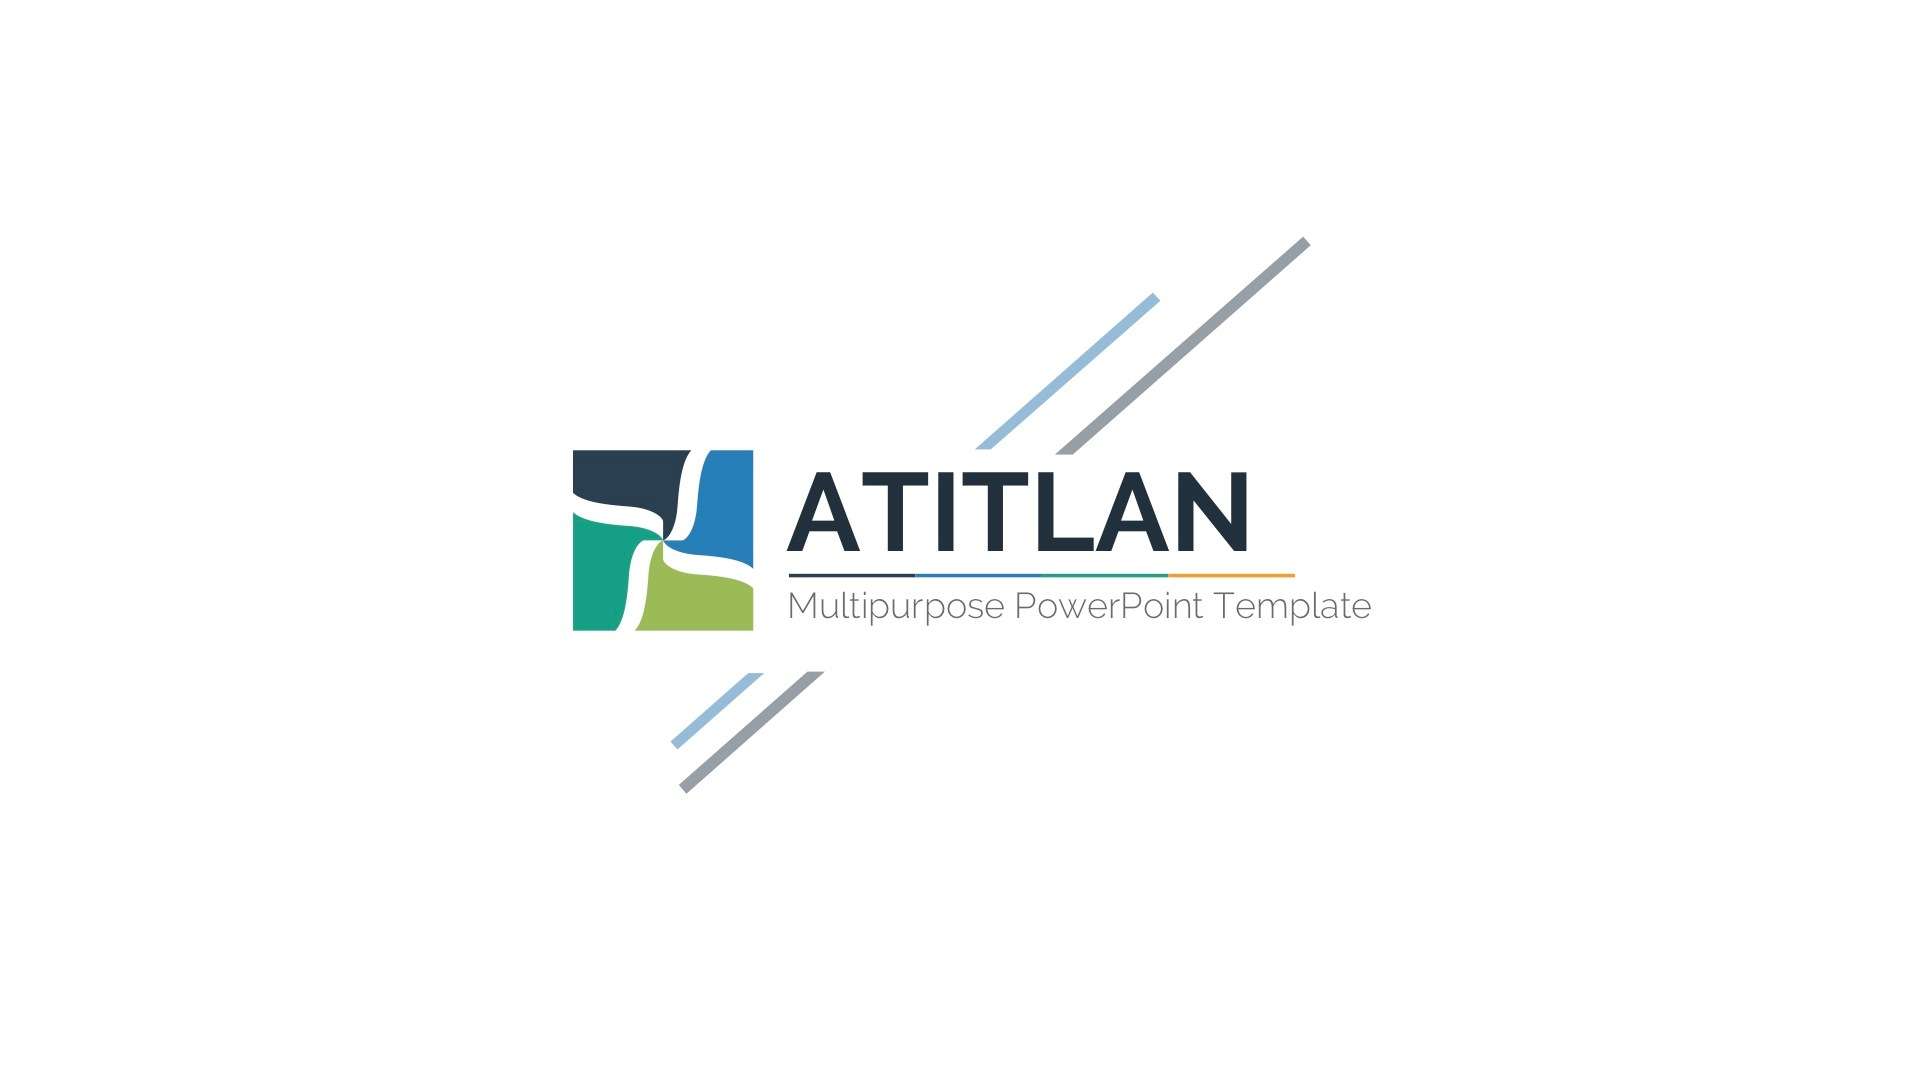 Atitlan PowerPoint Template